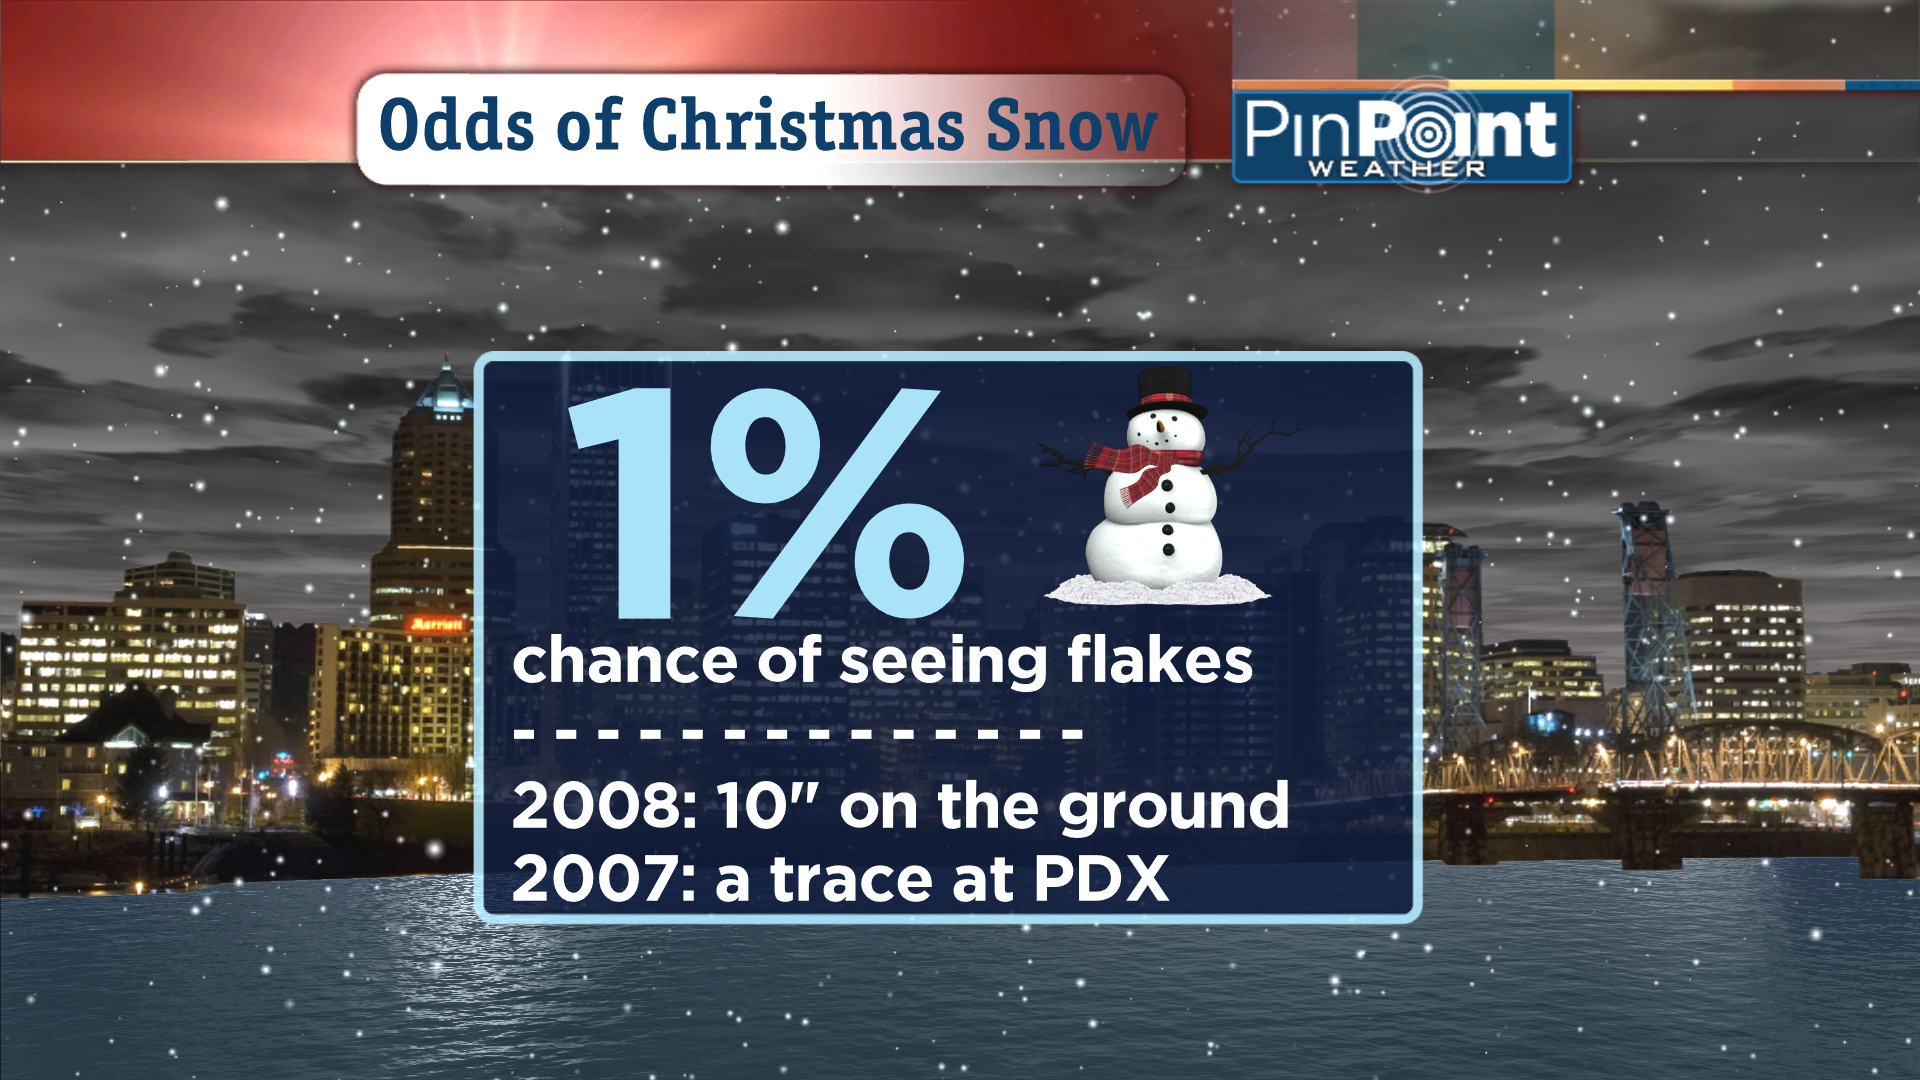 Chance Of A White Christmas In Portland, Oregon